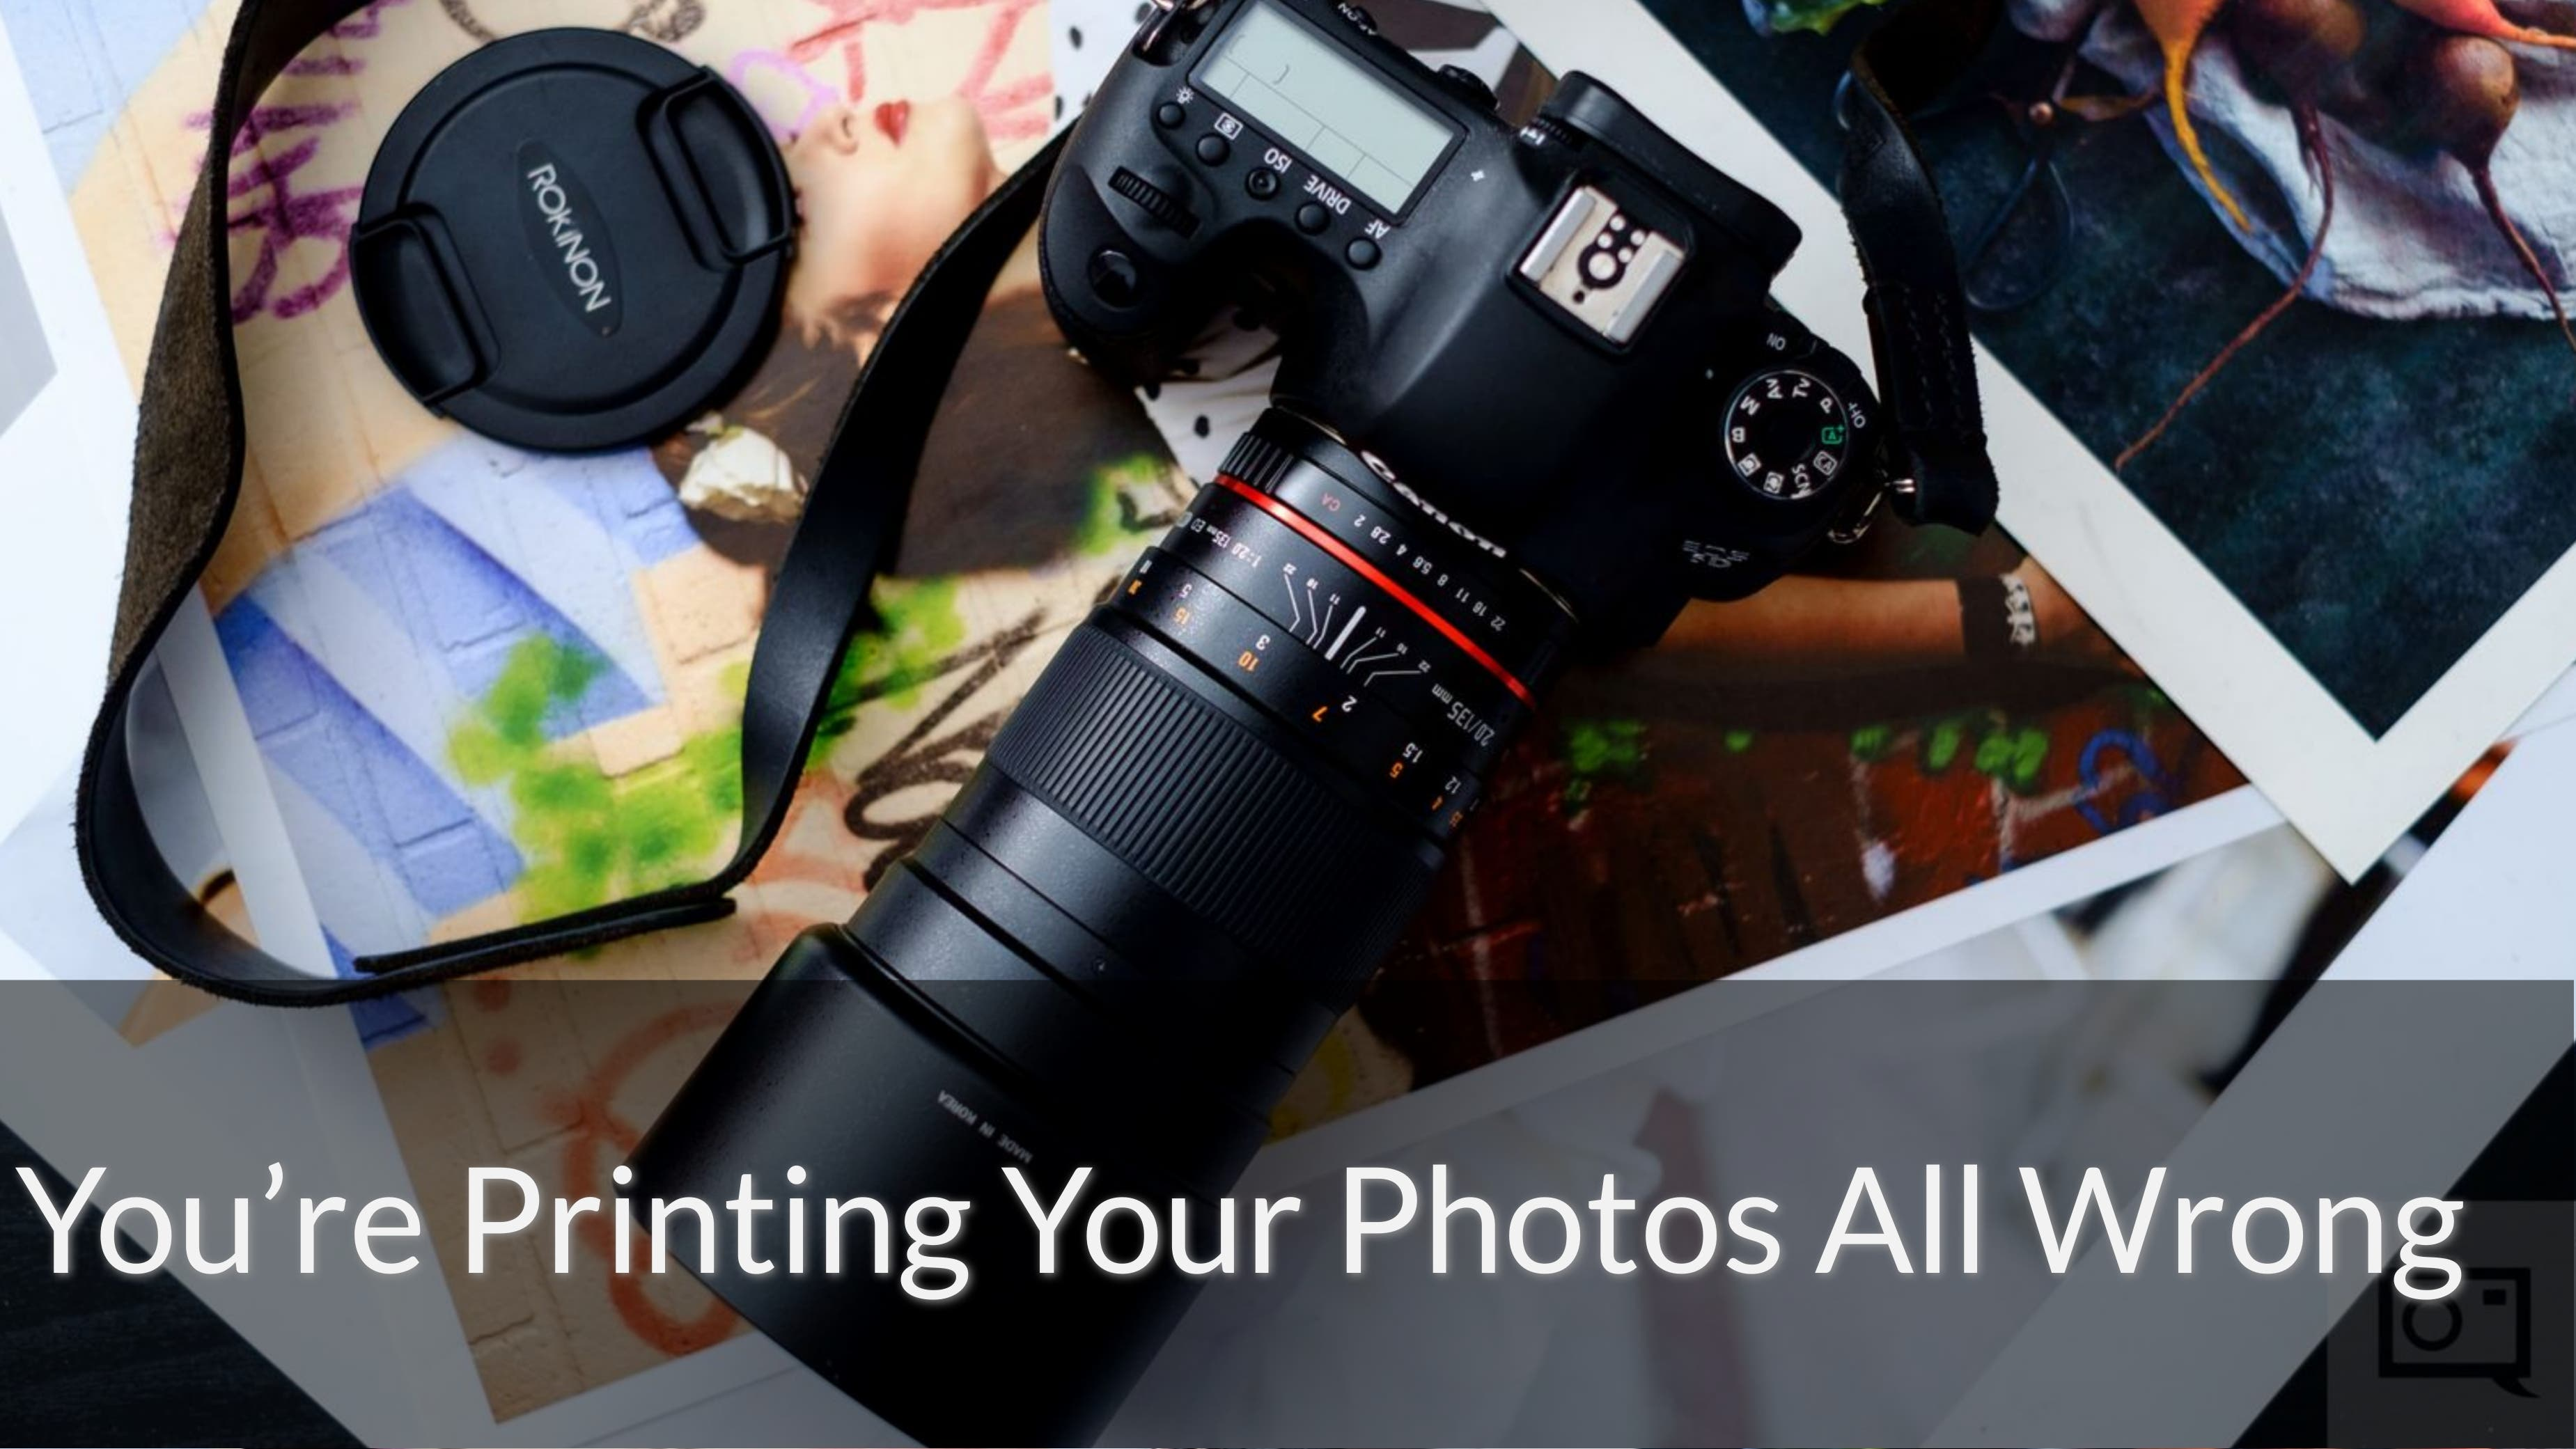 You're Printing Your Photos All Wrong. We'll Show You How.